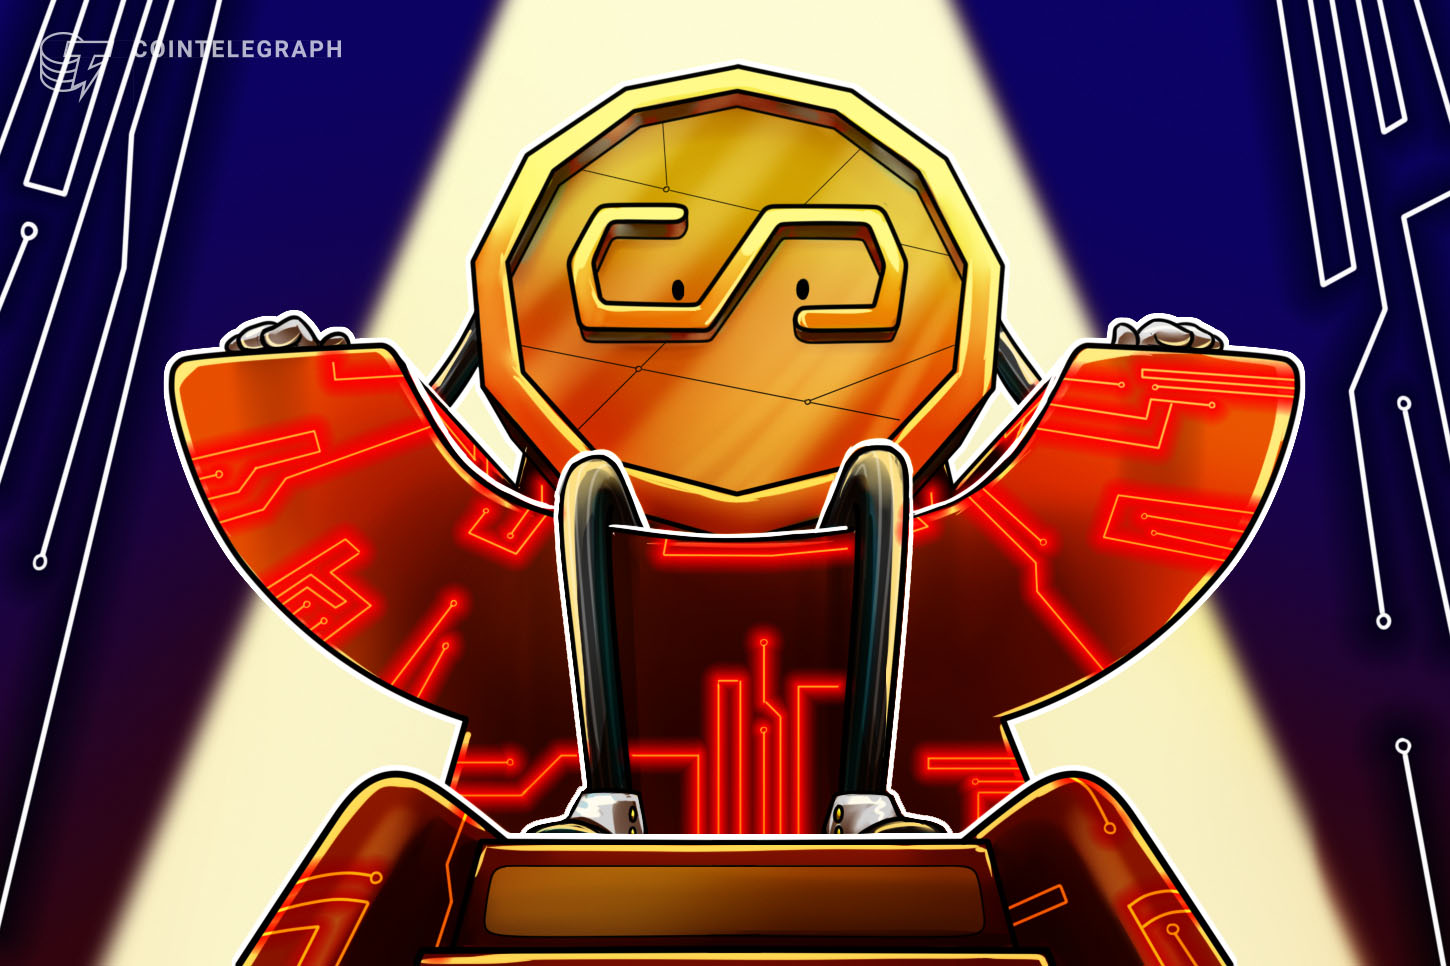 Stablecoin market to hit $1T by 2025, Unstoppable Domains CEO predicts